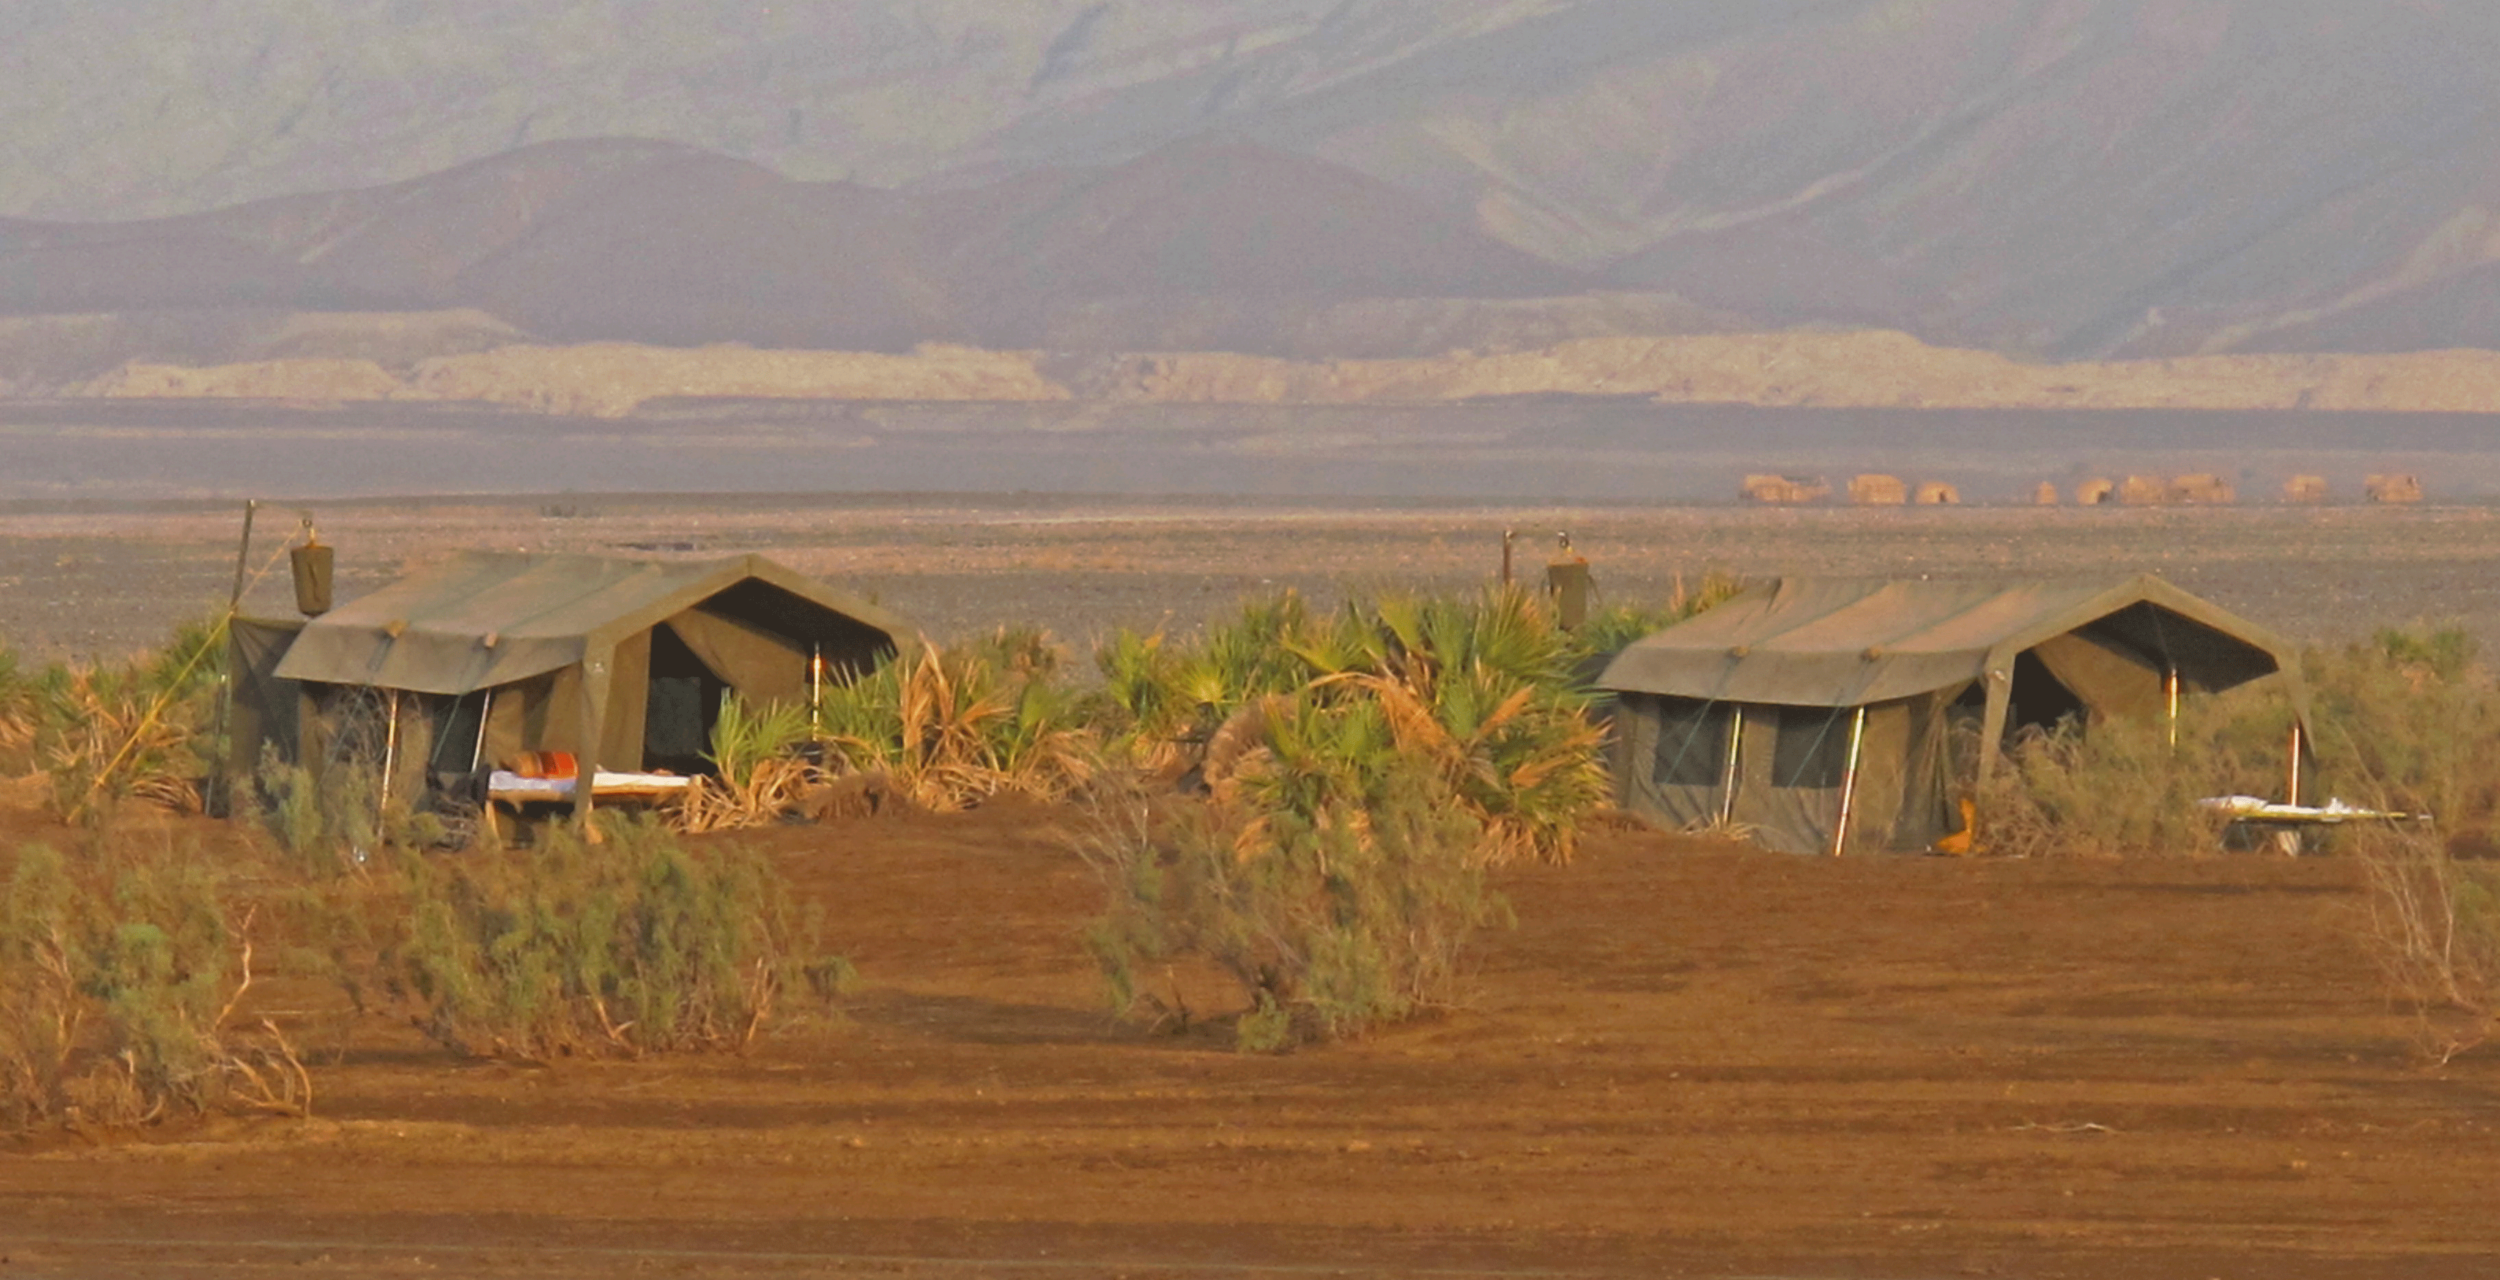 Danakil-Private-Mobile-Camps.png